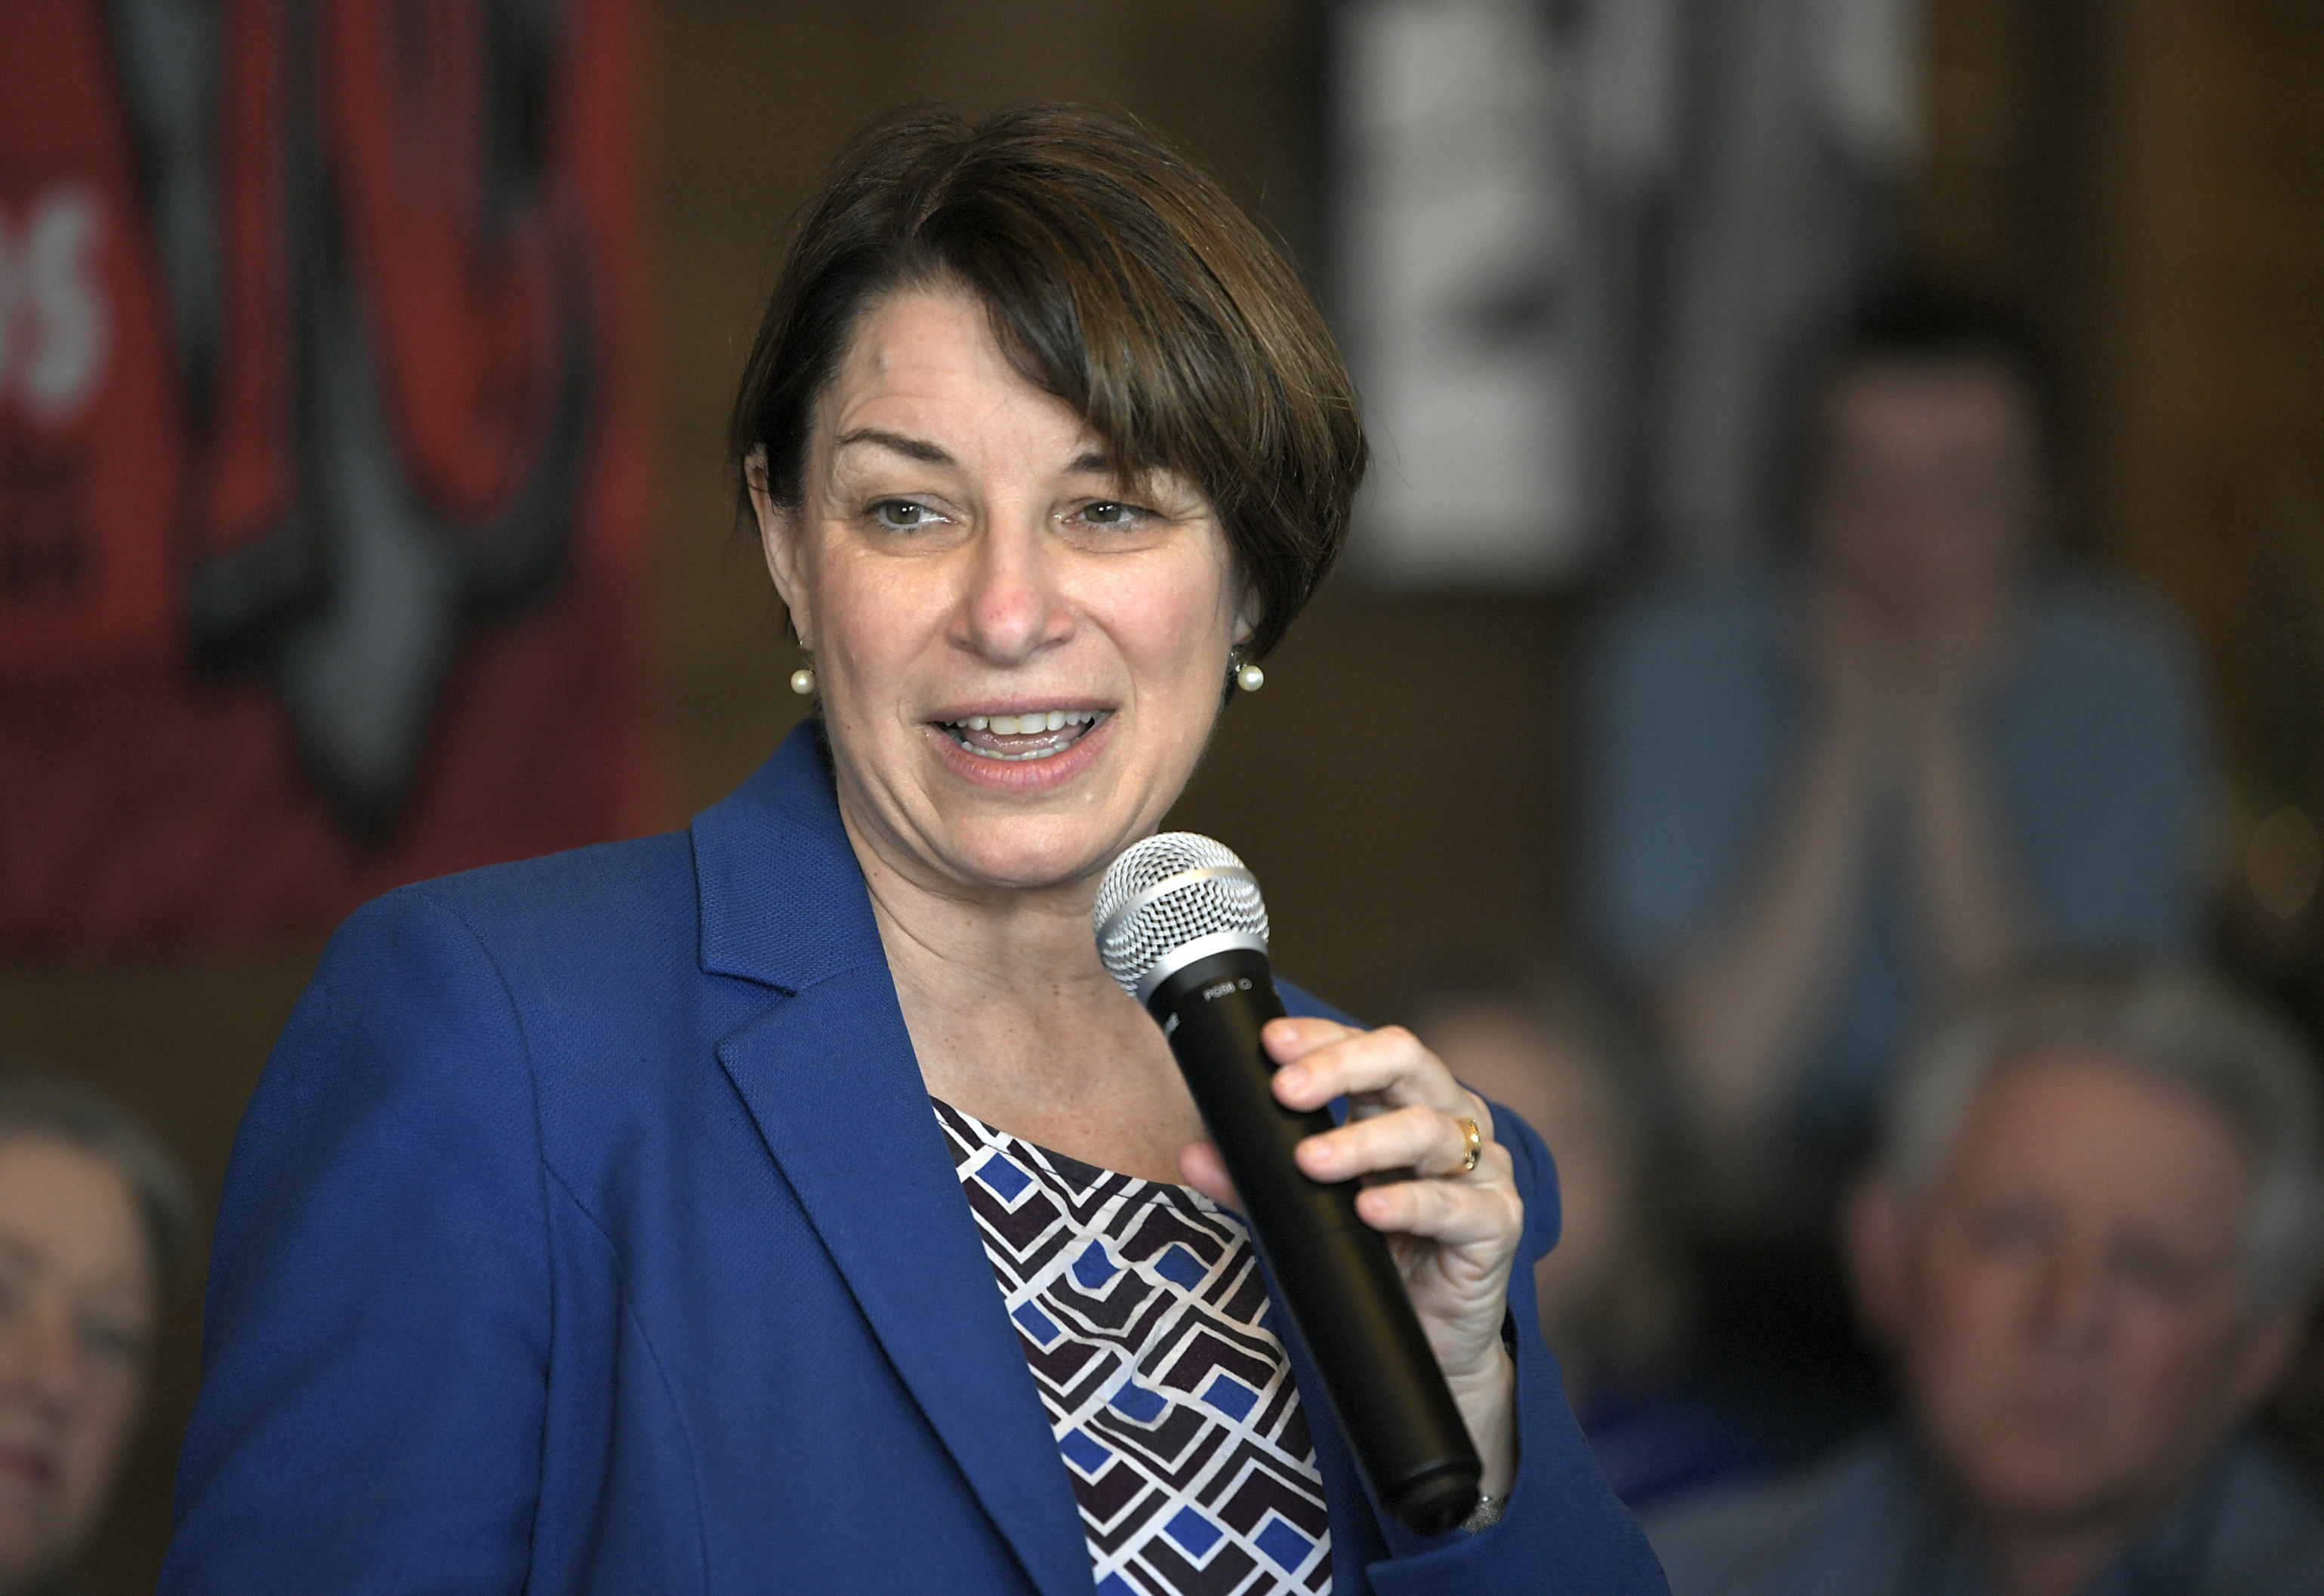 Amy Klobuchar: If House brings impeachment proceedings, 'we will deal with them'